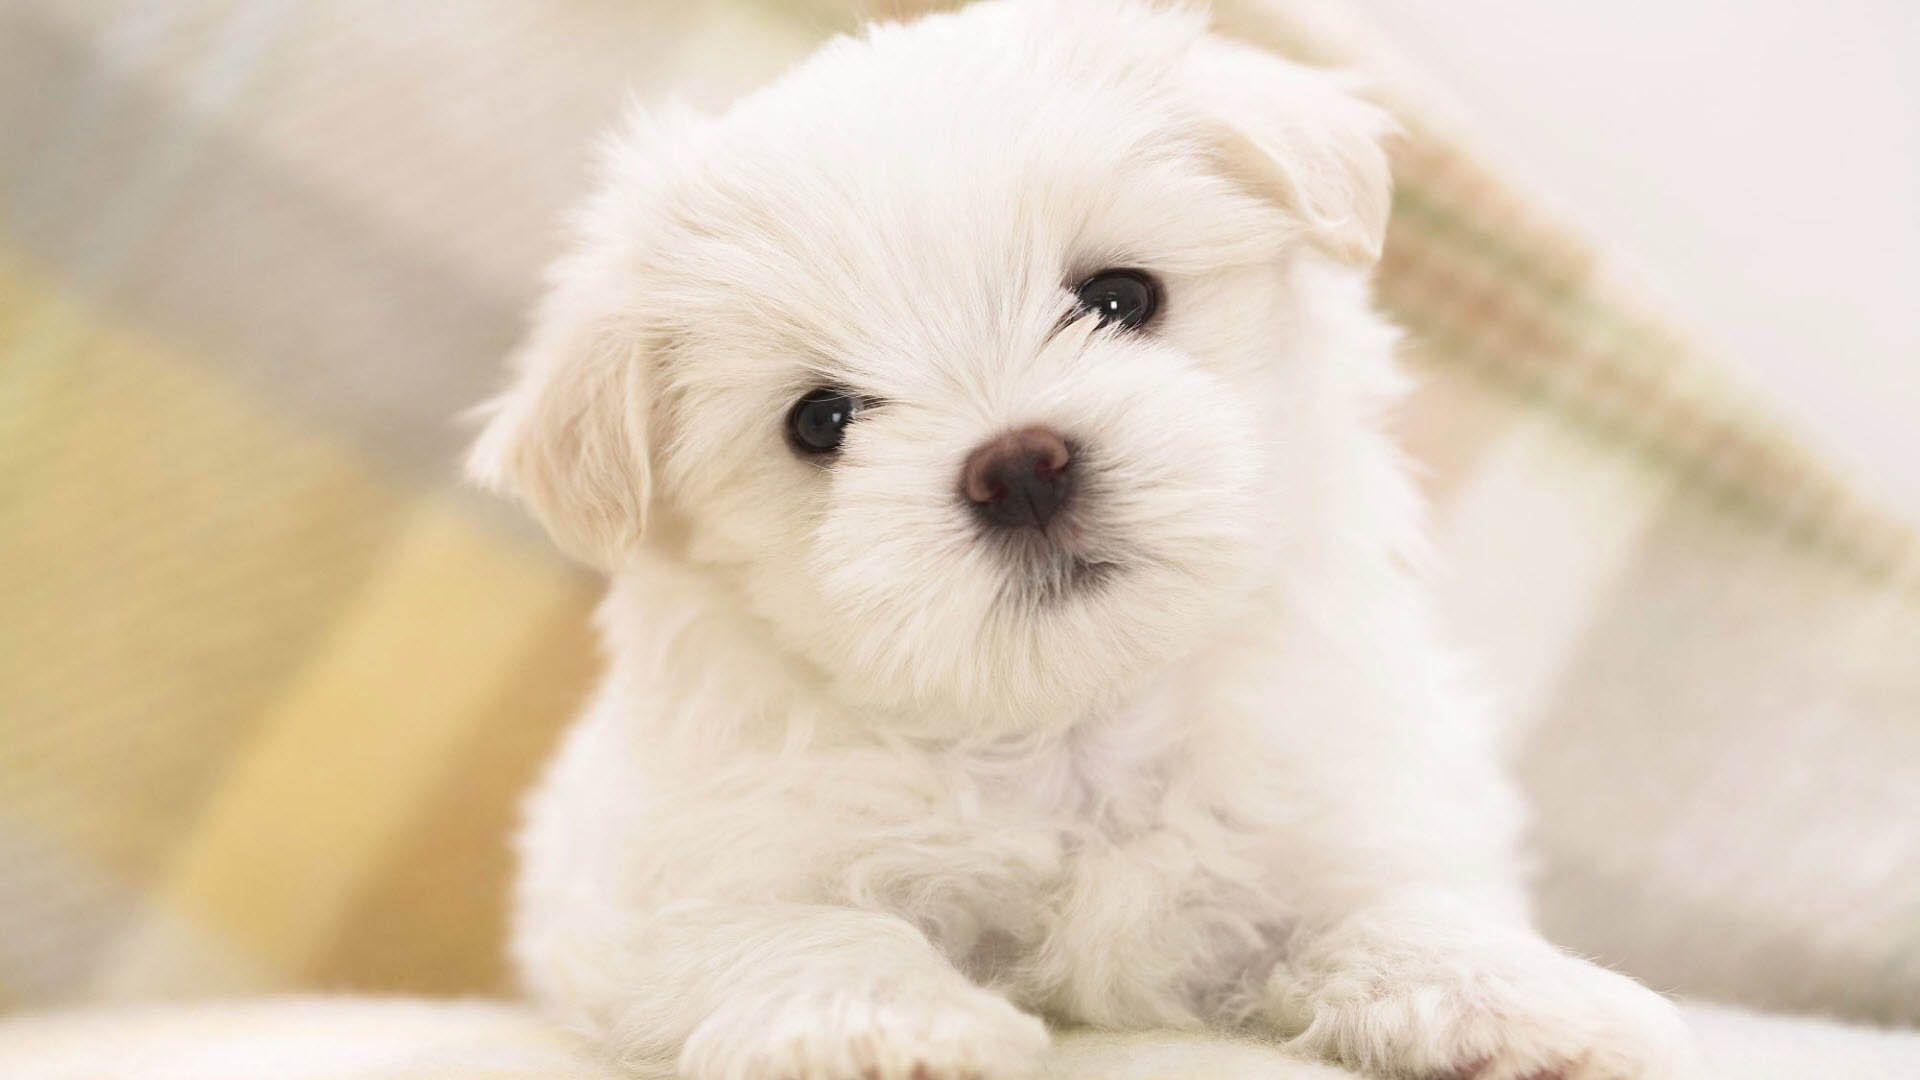 Dog Wallpapers 32